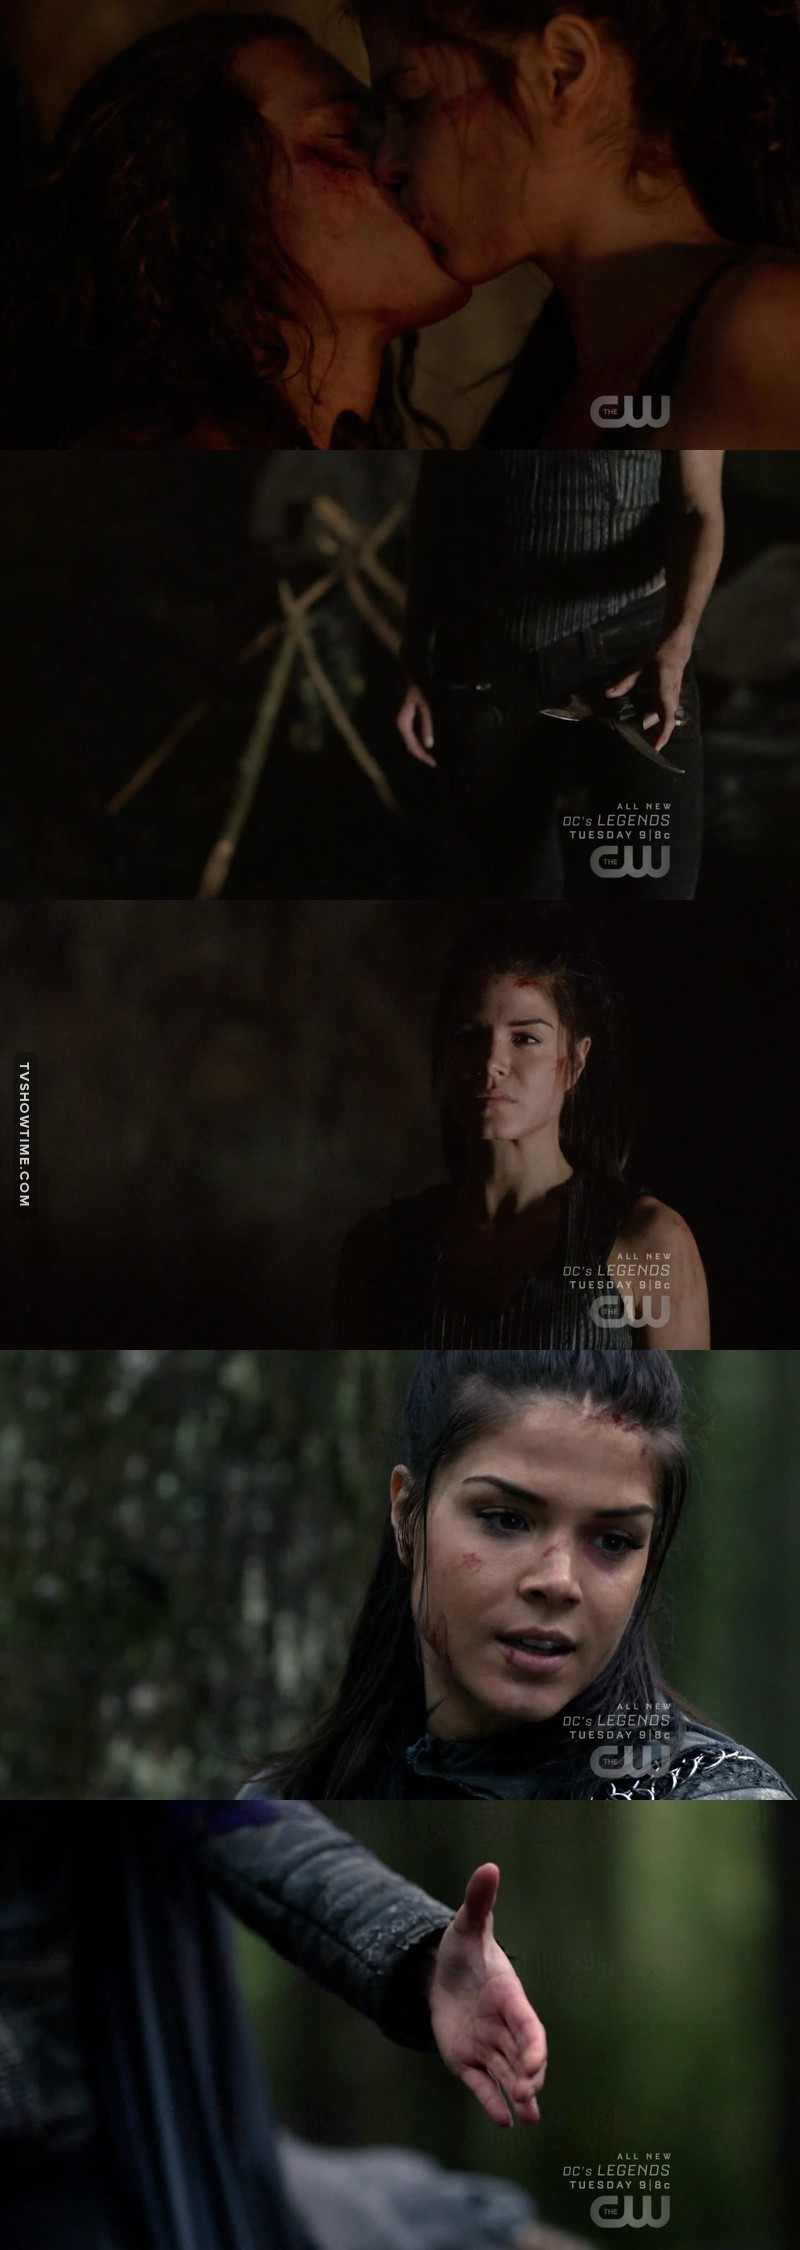 This probably means the beginning of Octavia's change, she's getting lighter.